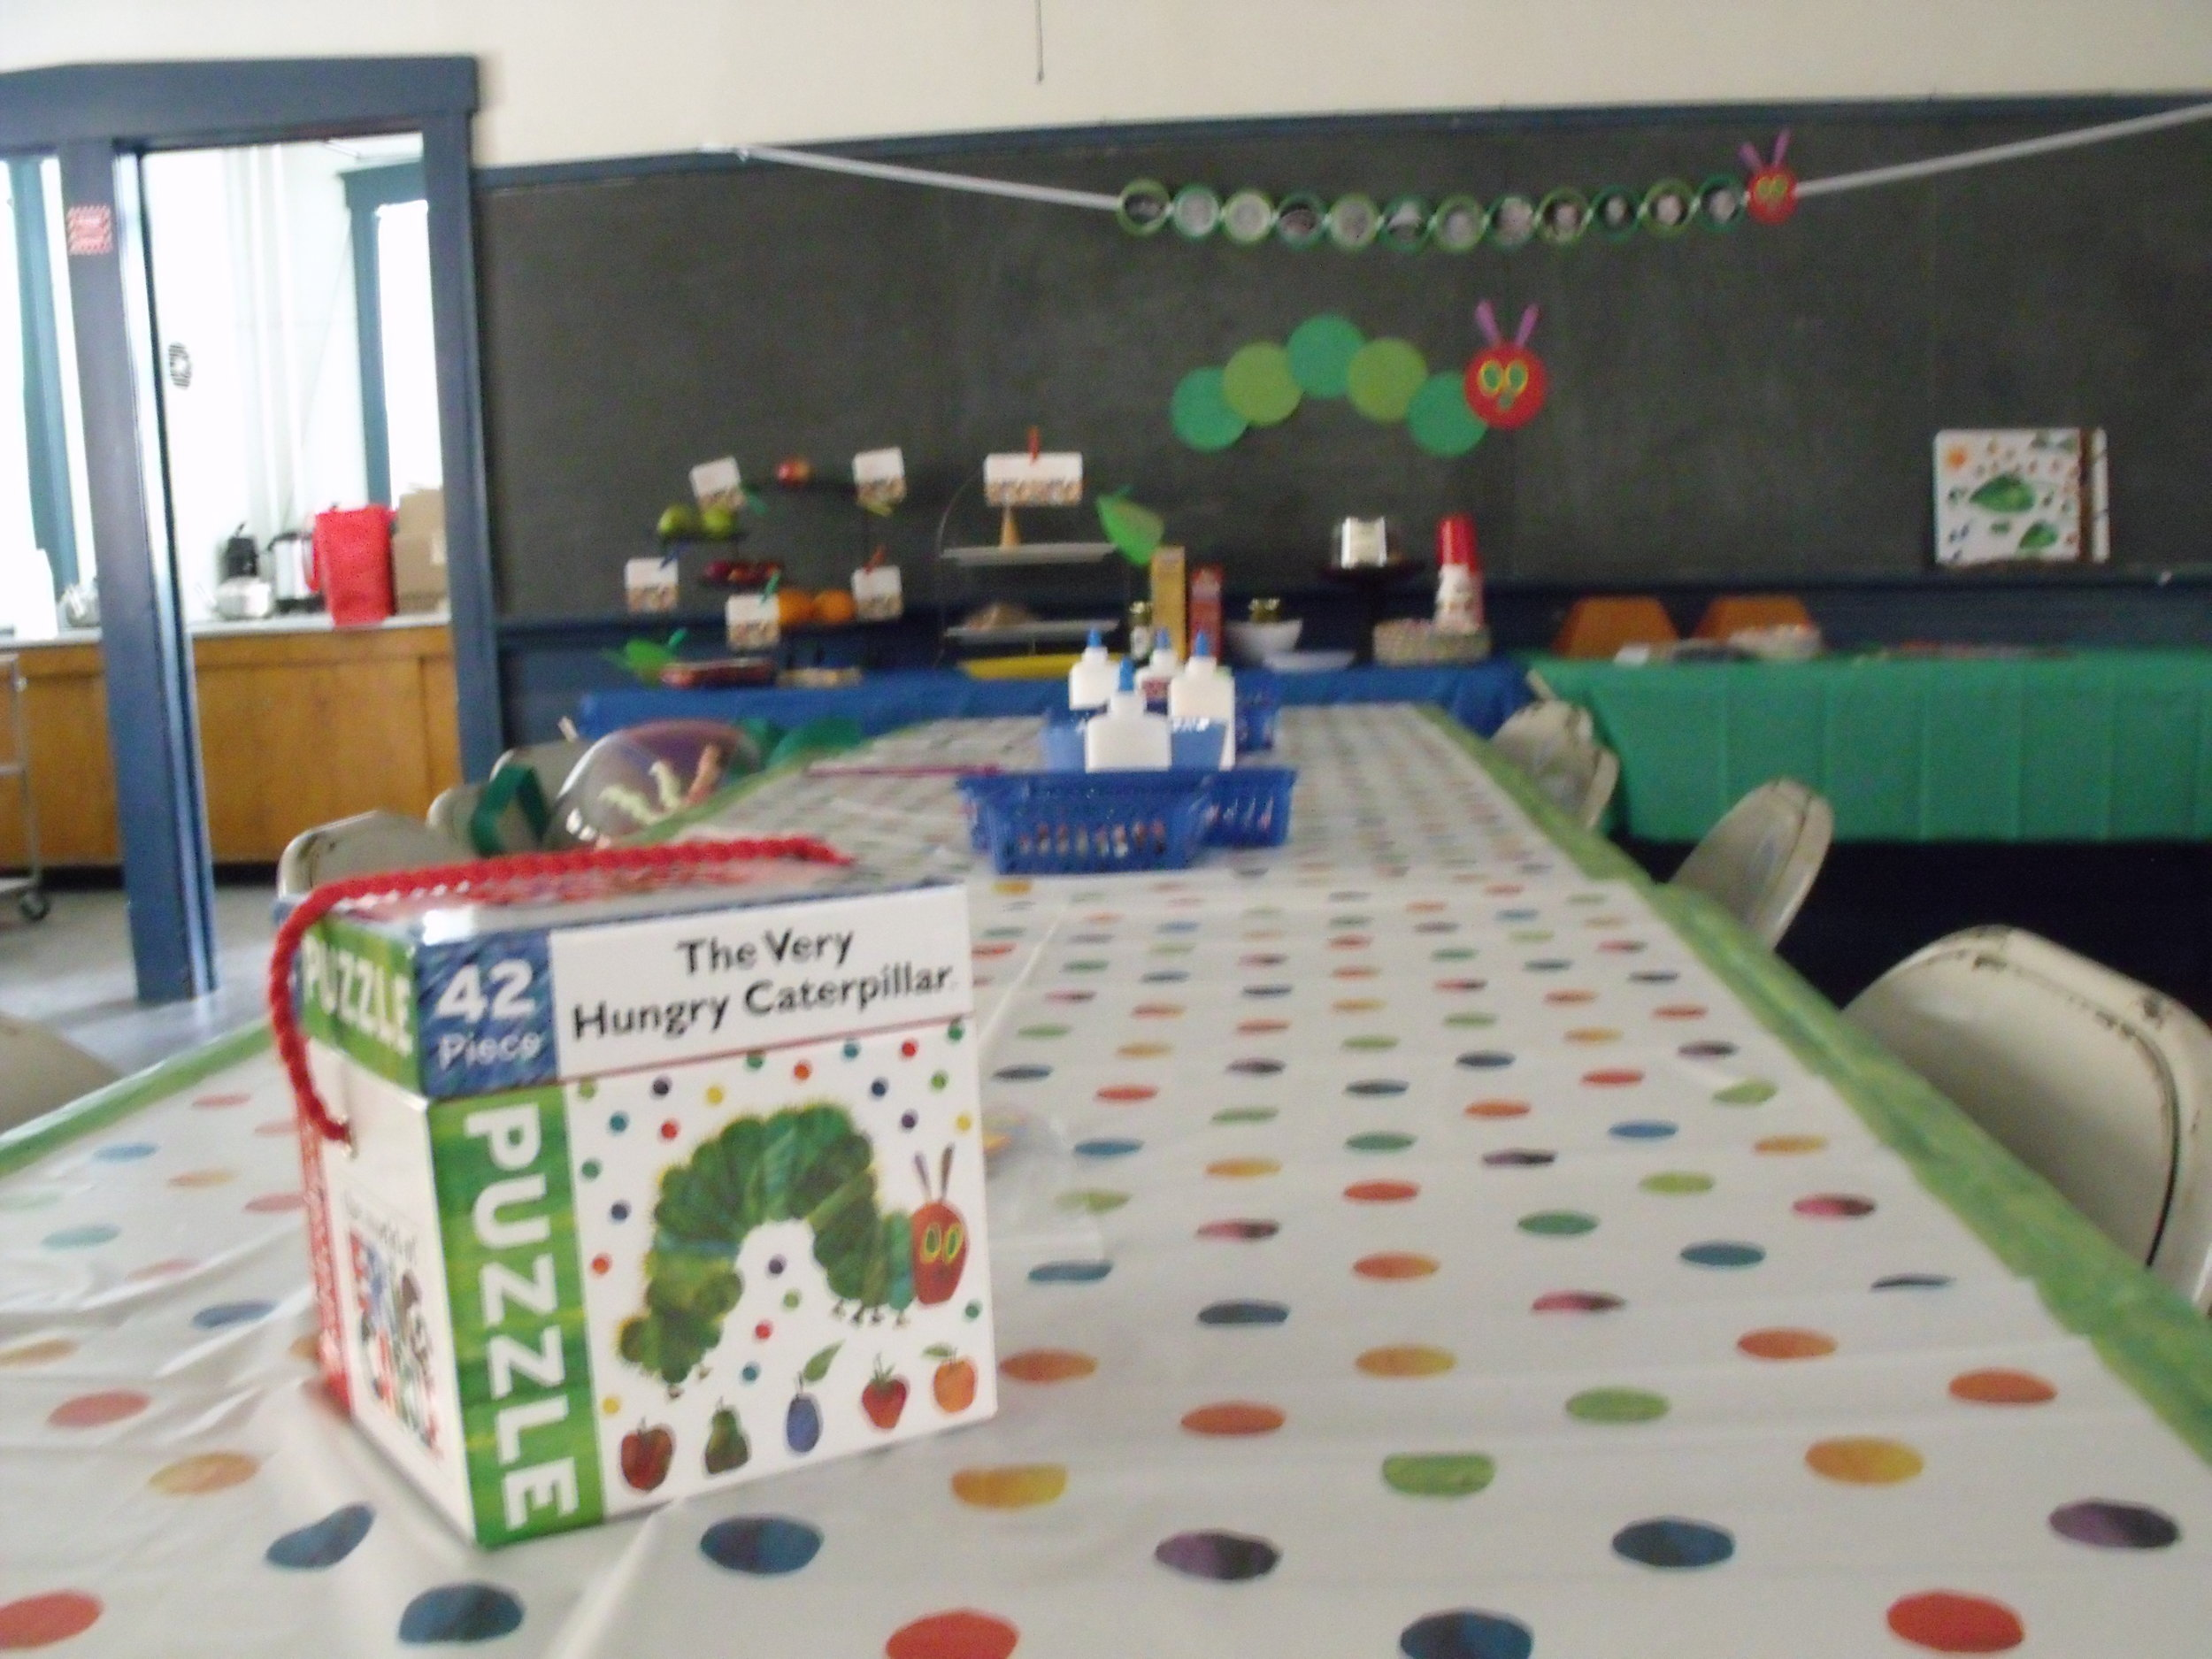 Eric Carl party decorations 003.jpg